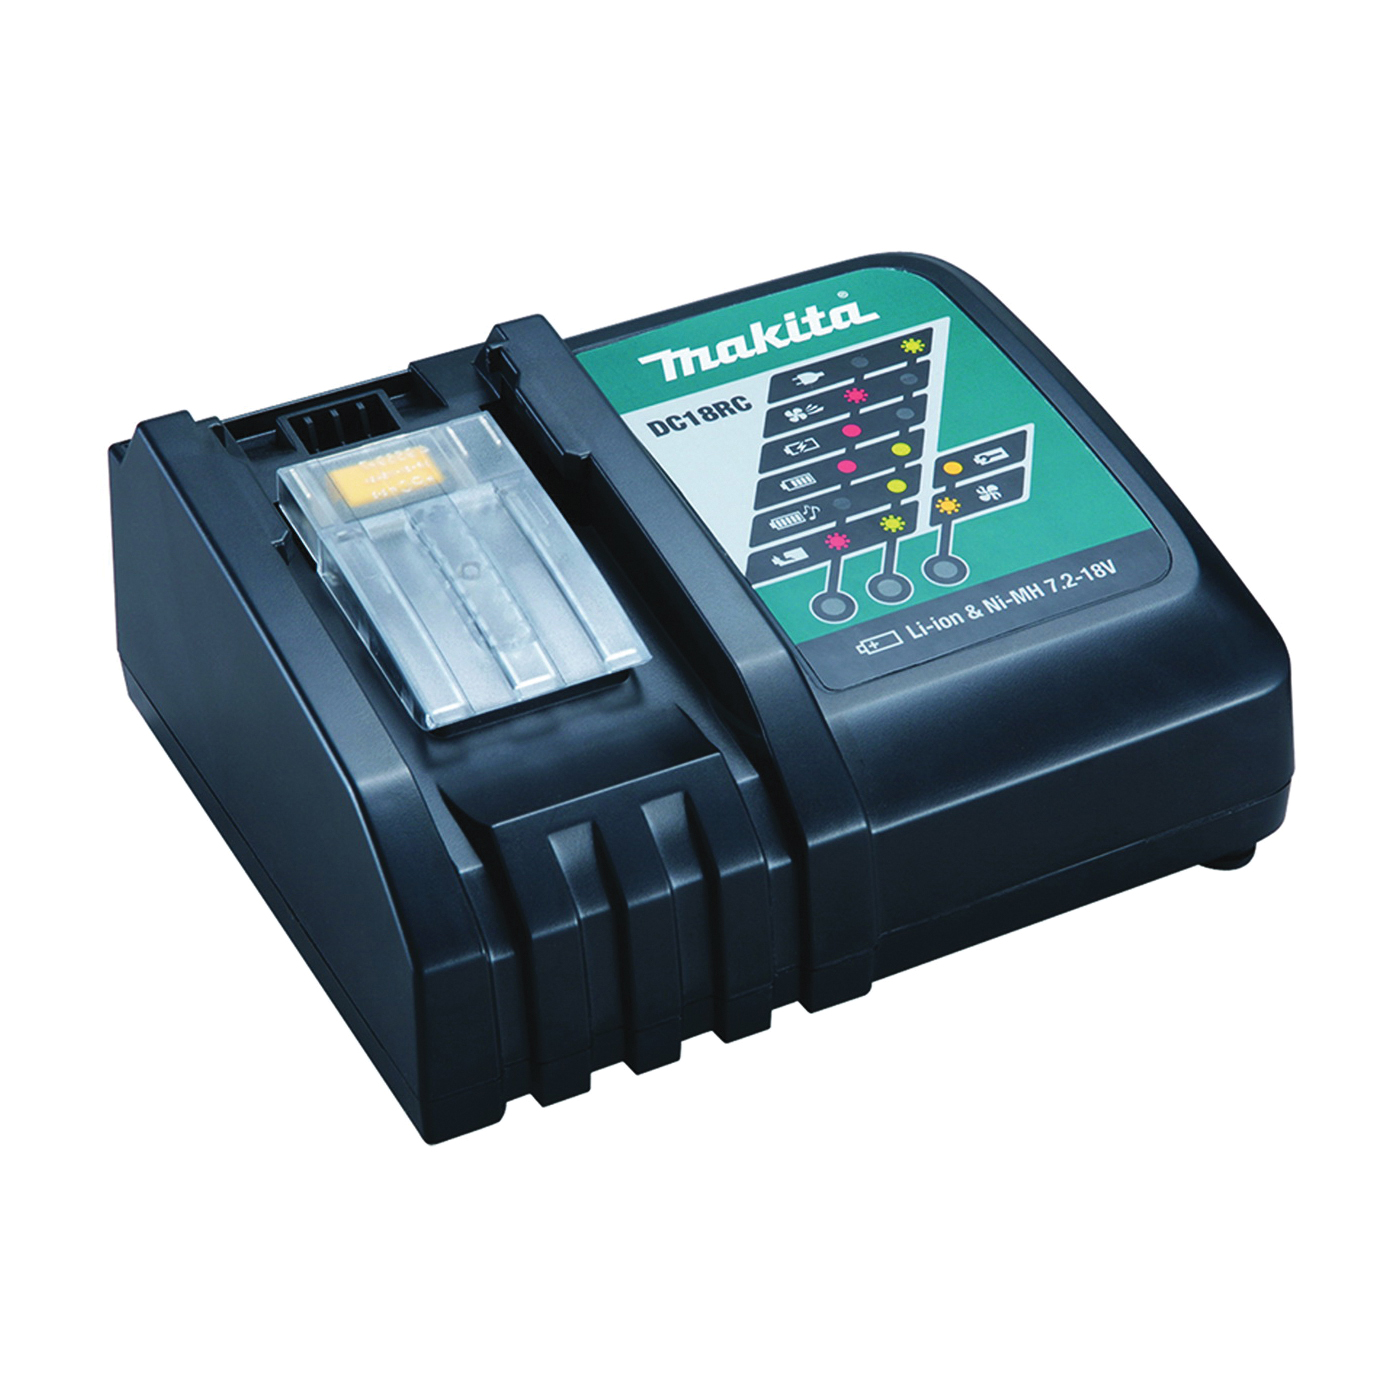 Picture of Makita DC18RC Battery Charger, 1.5 to 5 Ah, 45 min Charge, Battery Included: No